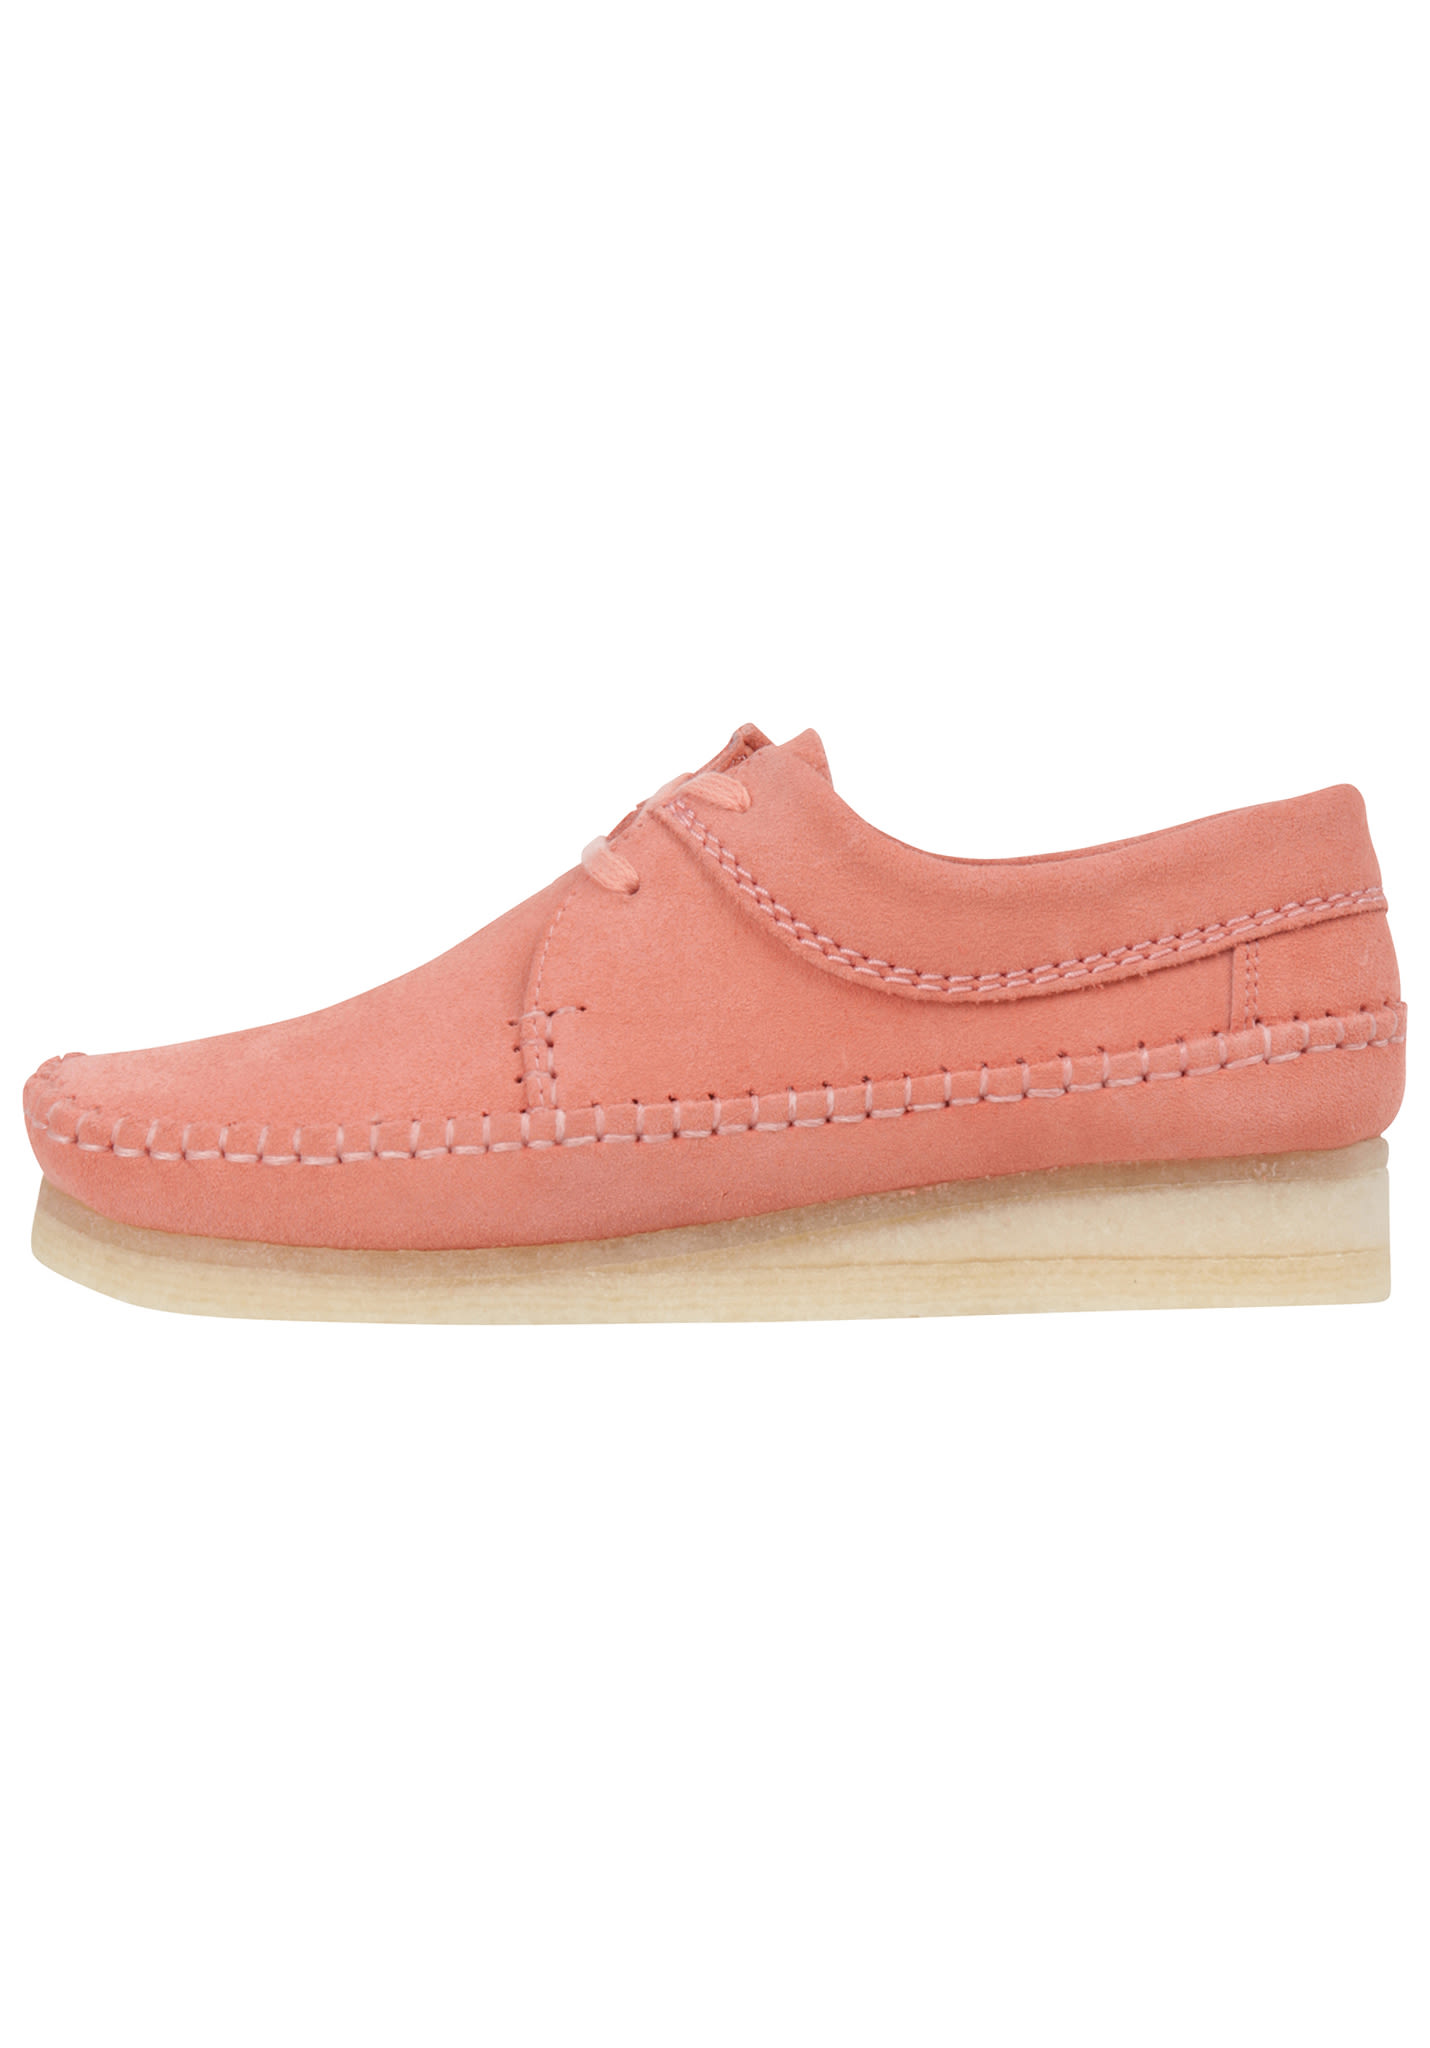 f4f9da74ffbf CLARKS ORIGINALS Weaver - Fashion Shoes for Women - Pink - Planet Sports